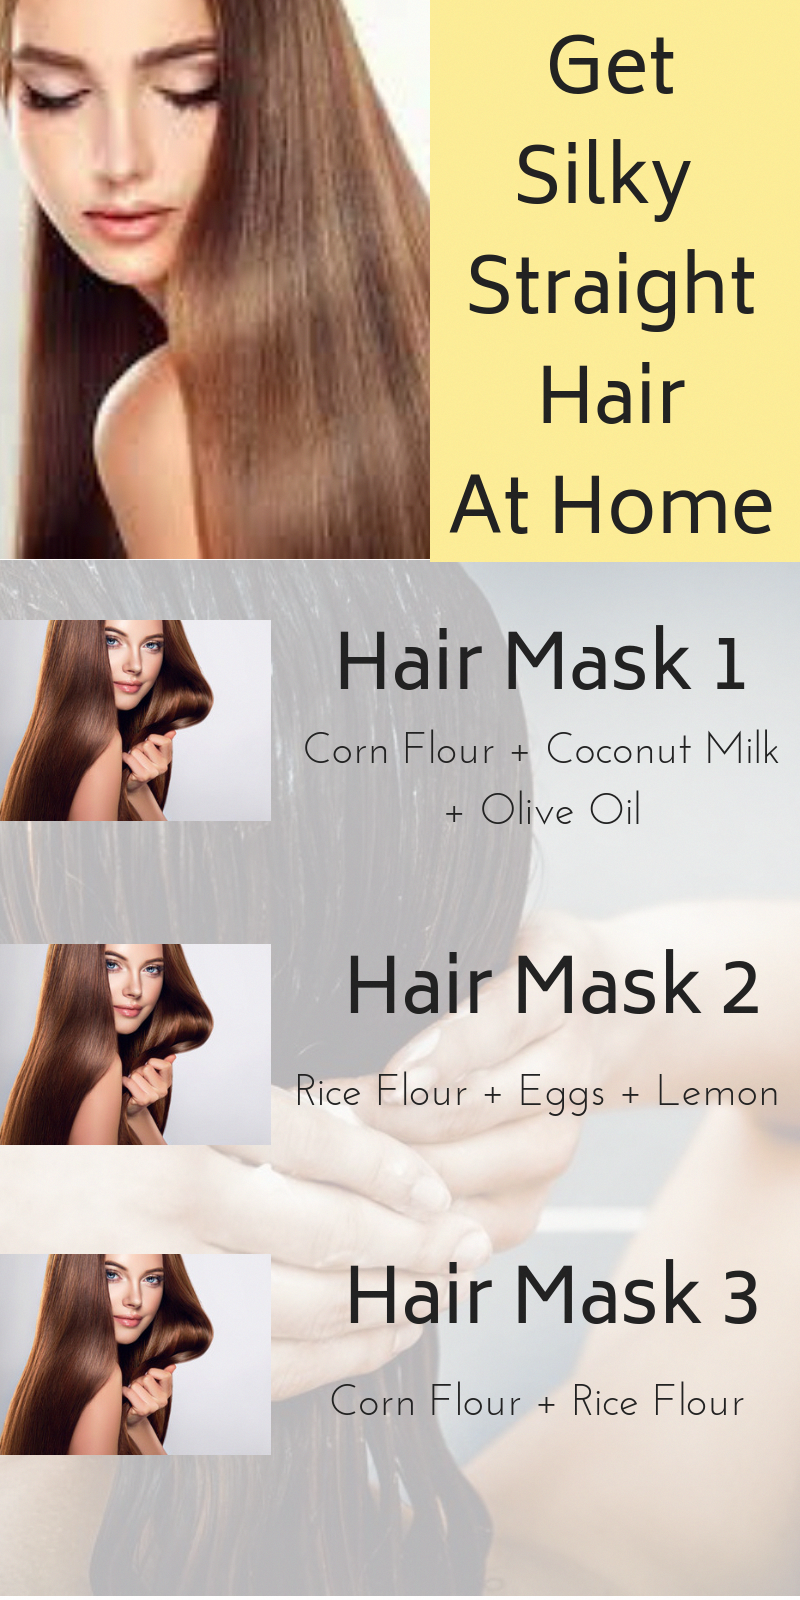 Hair Products To Get Straight Hair | Hairstyles For Girls With Long Hair | How To Make My Curly ...